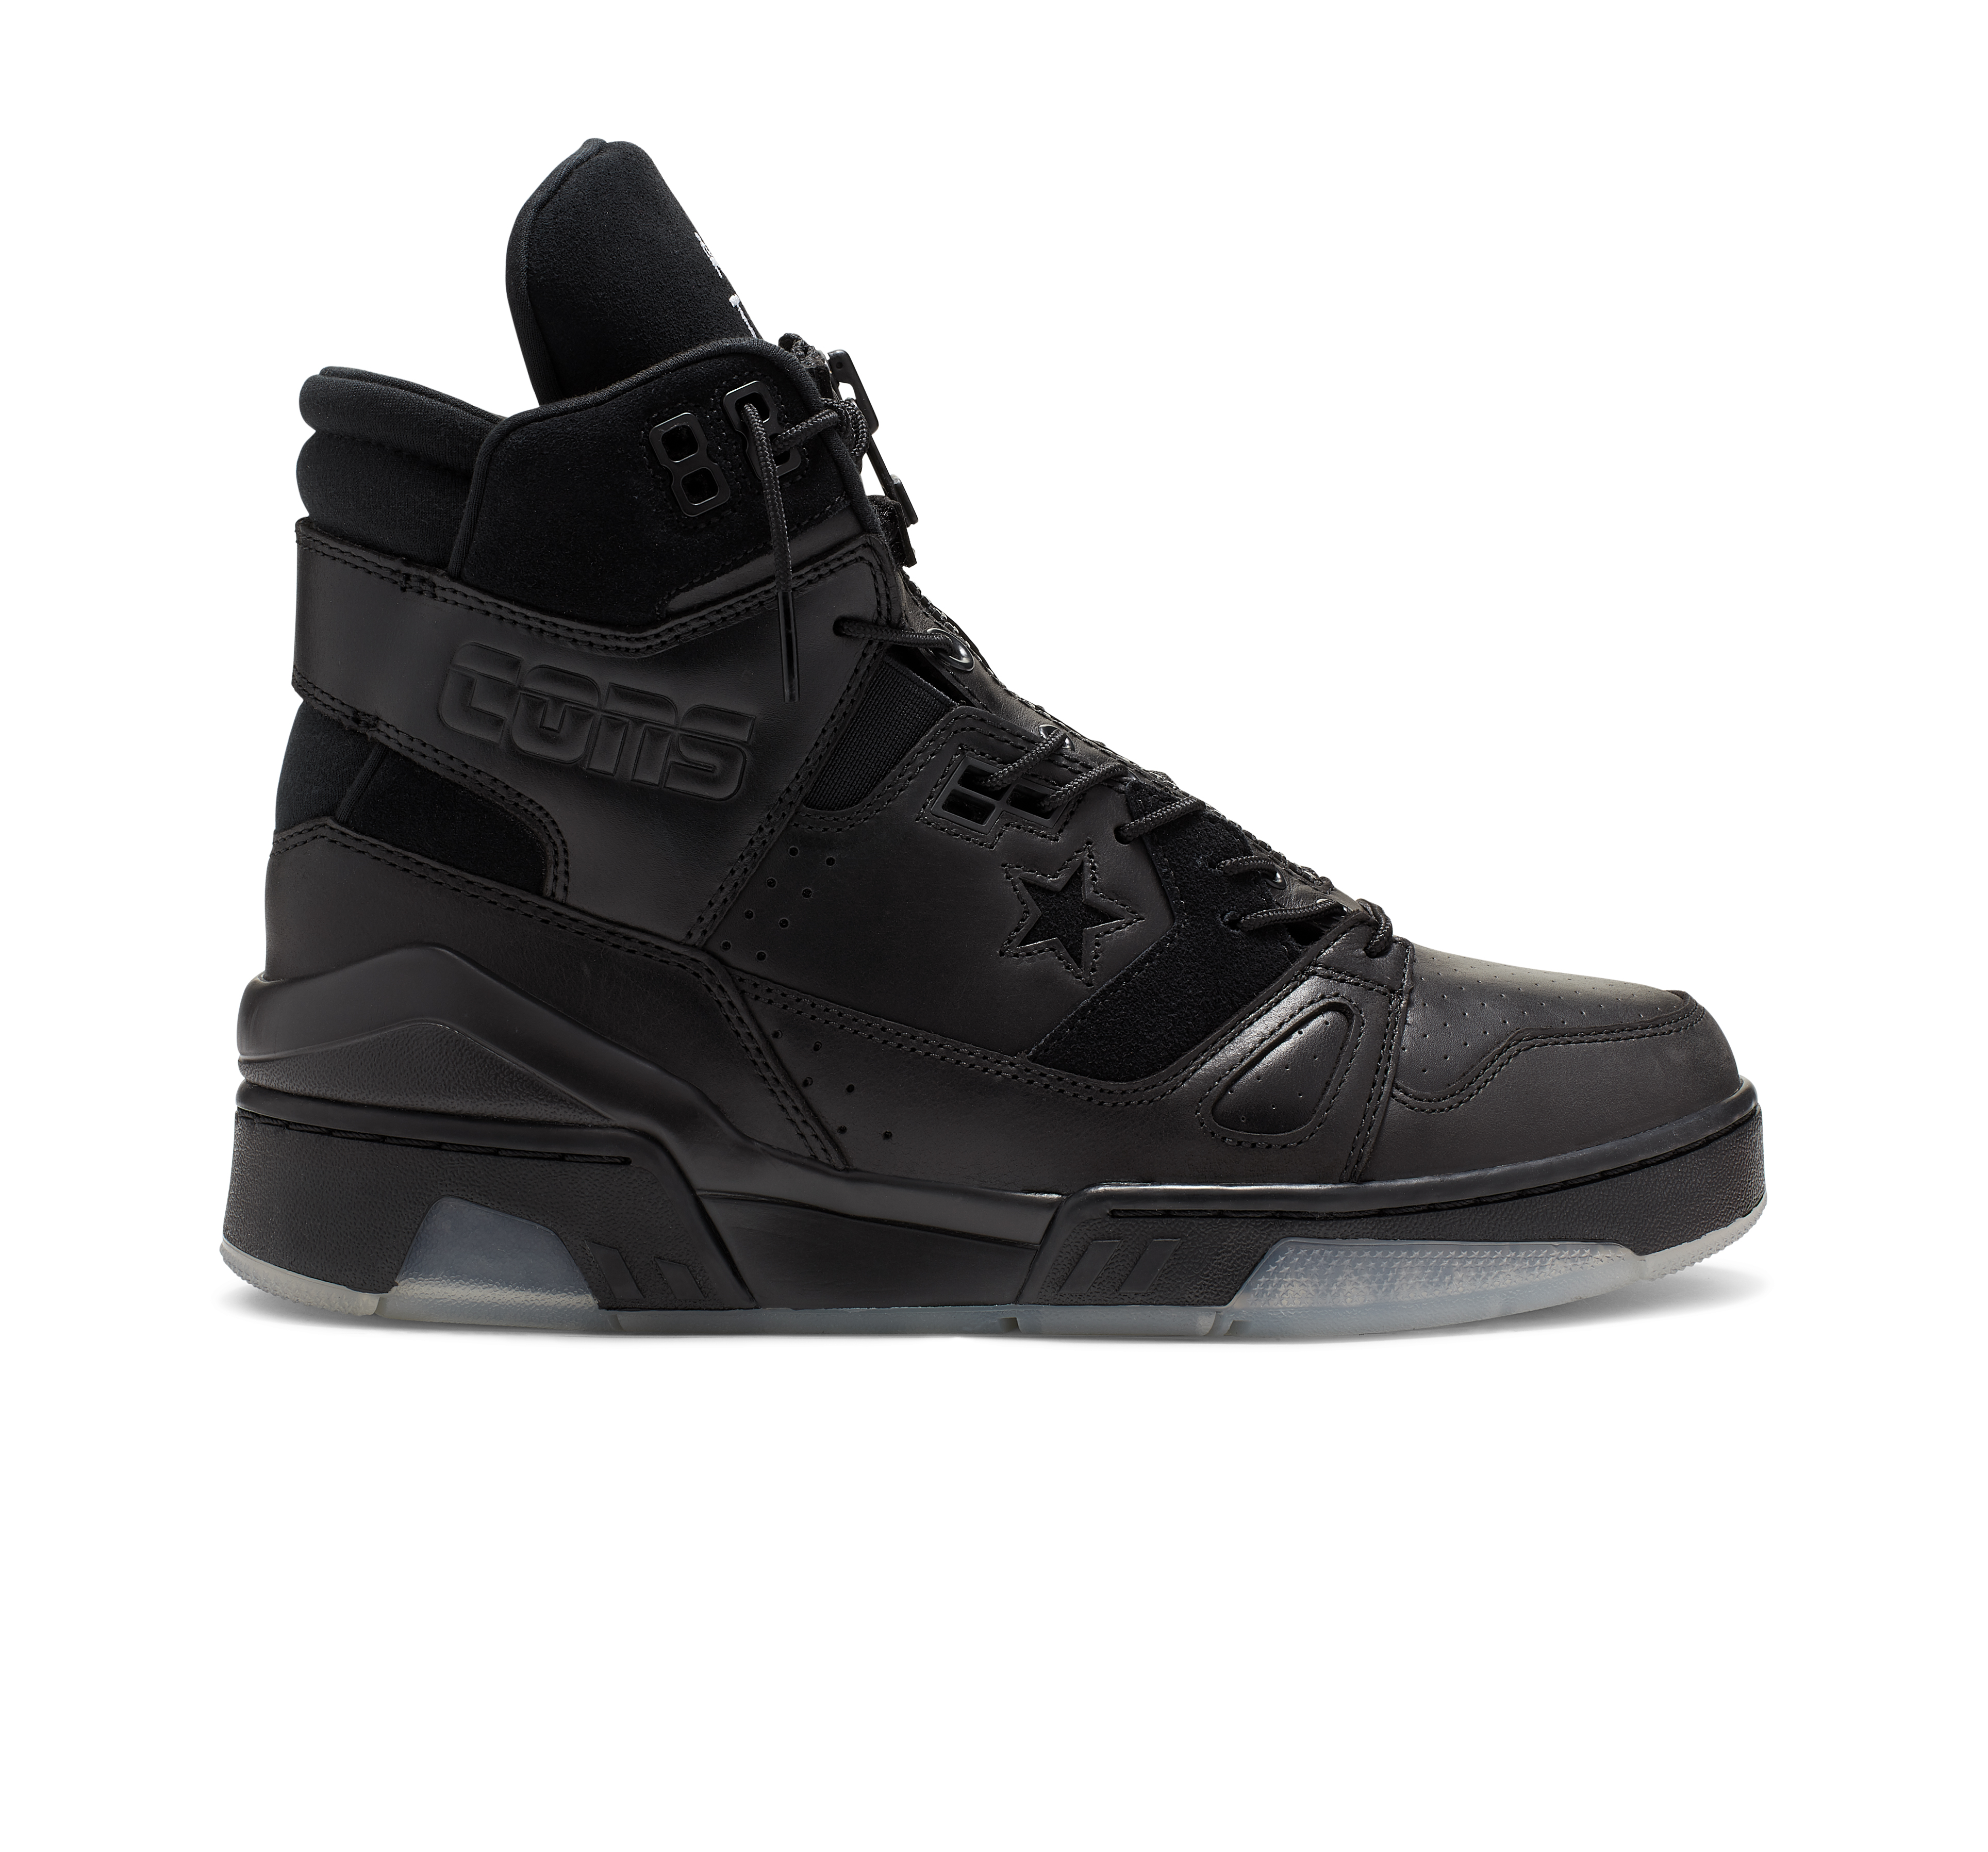 a8ffd1cf x TheSoloist ERX 260 in 2019 | Products | Converse, Tactical wear ...